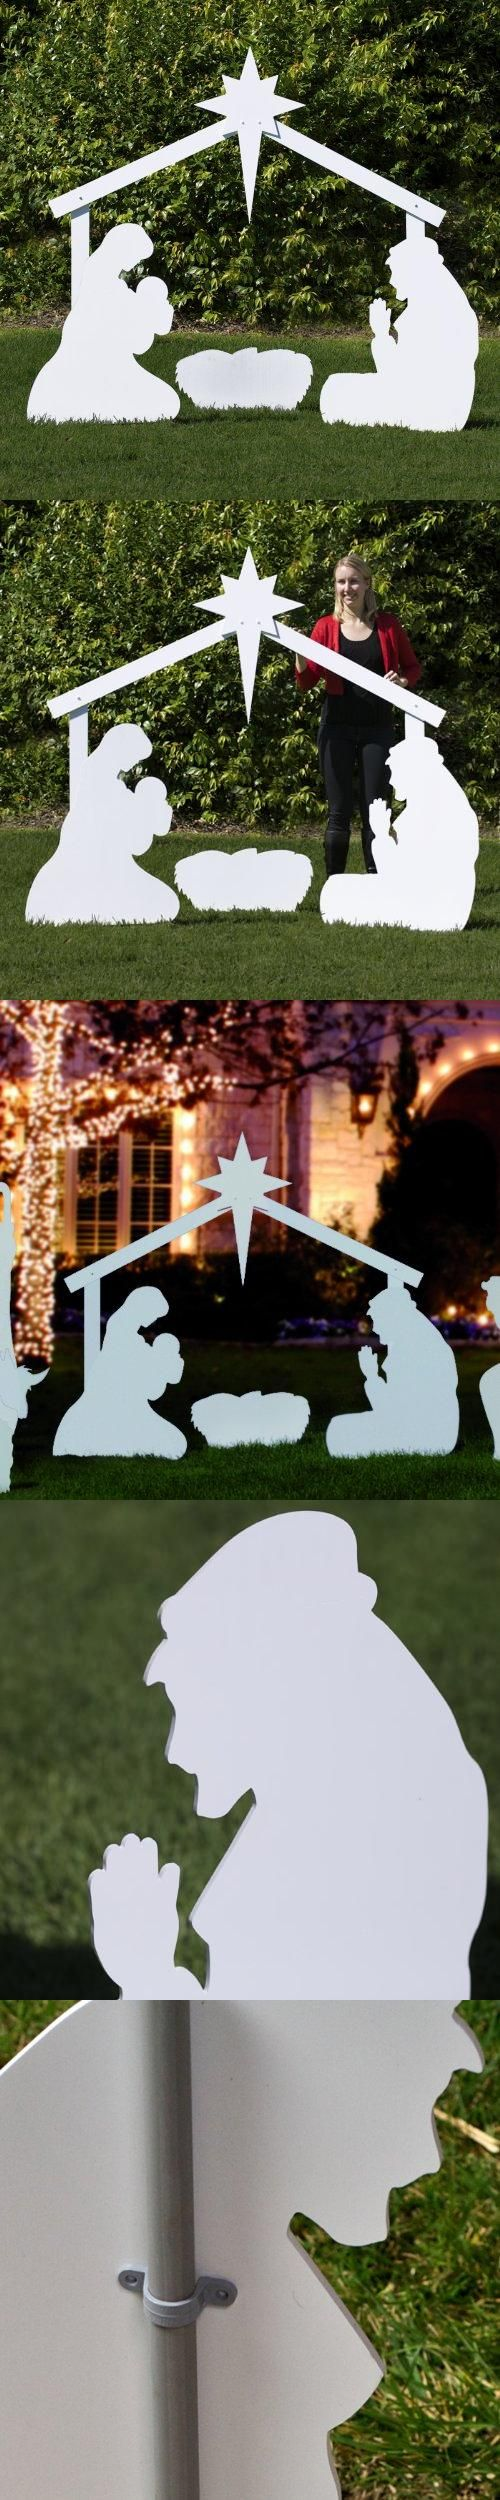 Outdoor Nativity Store Large Silhouette Outdoor Nativity Set - Holy Family Scene, Share the meaning of Christmas with a subtle grandiosity. Nearly life-size, the Large Silhouette Outdoor Nativity Set Series is perfect for churches or large yards - in any winter climate. The Holy Fa..., #Outdoor Living, #Outdoor Statues